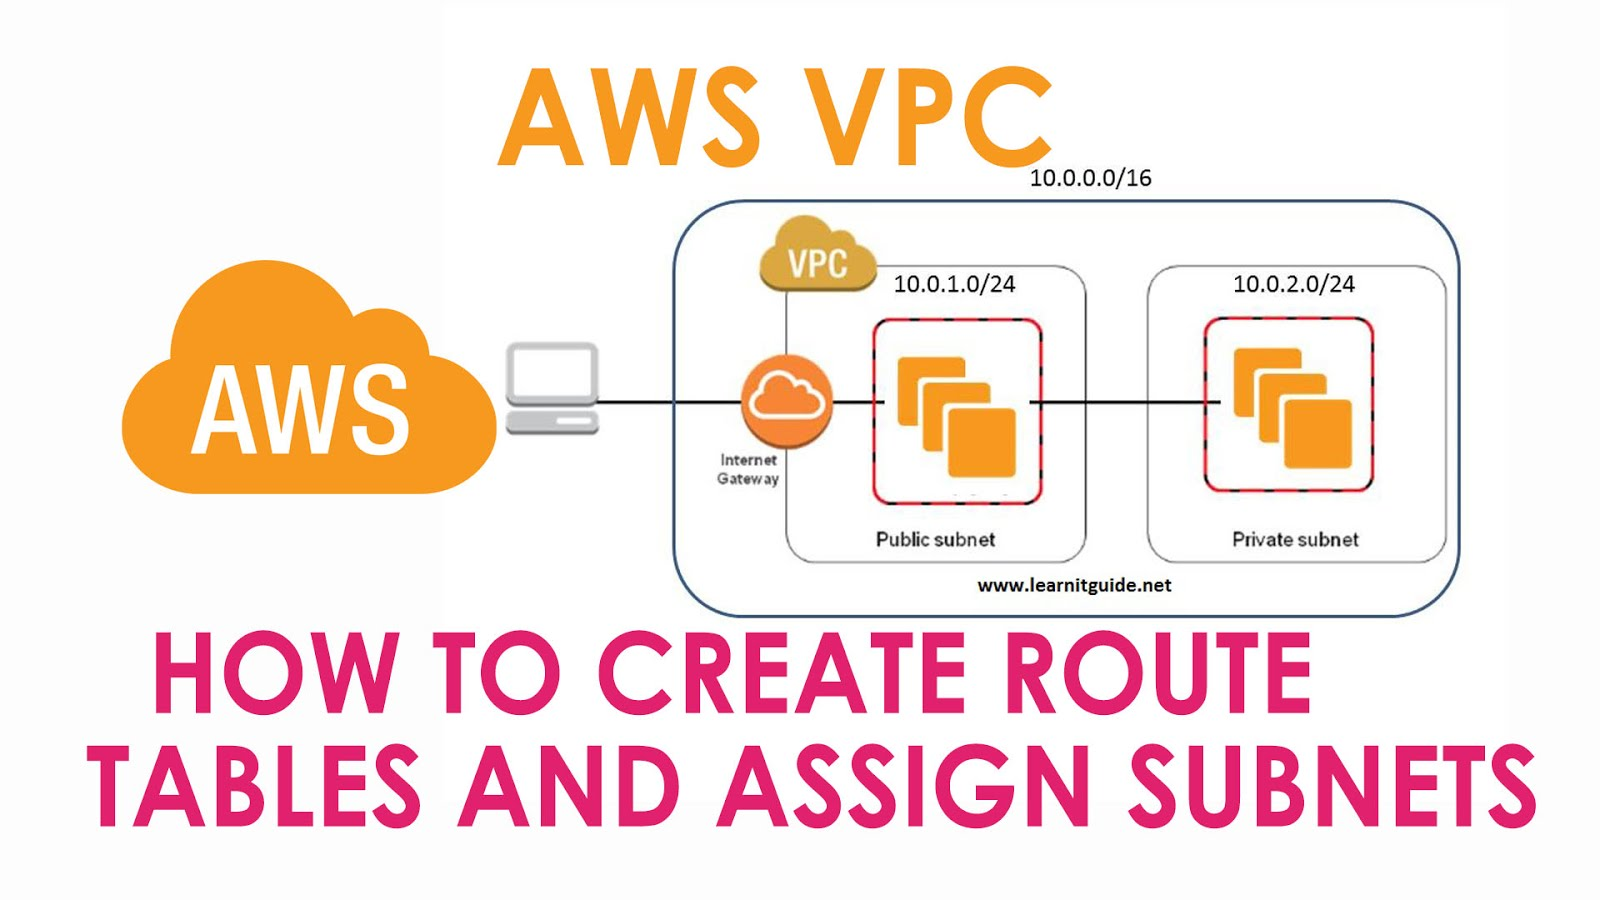 AWS VPC - Create Route Tables and Assign Subnets in AWS